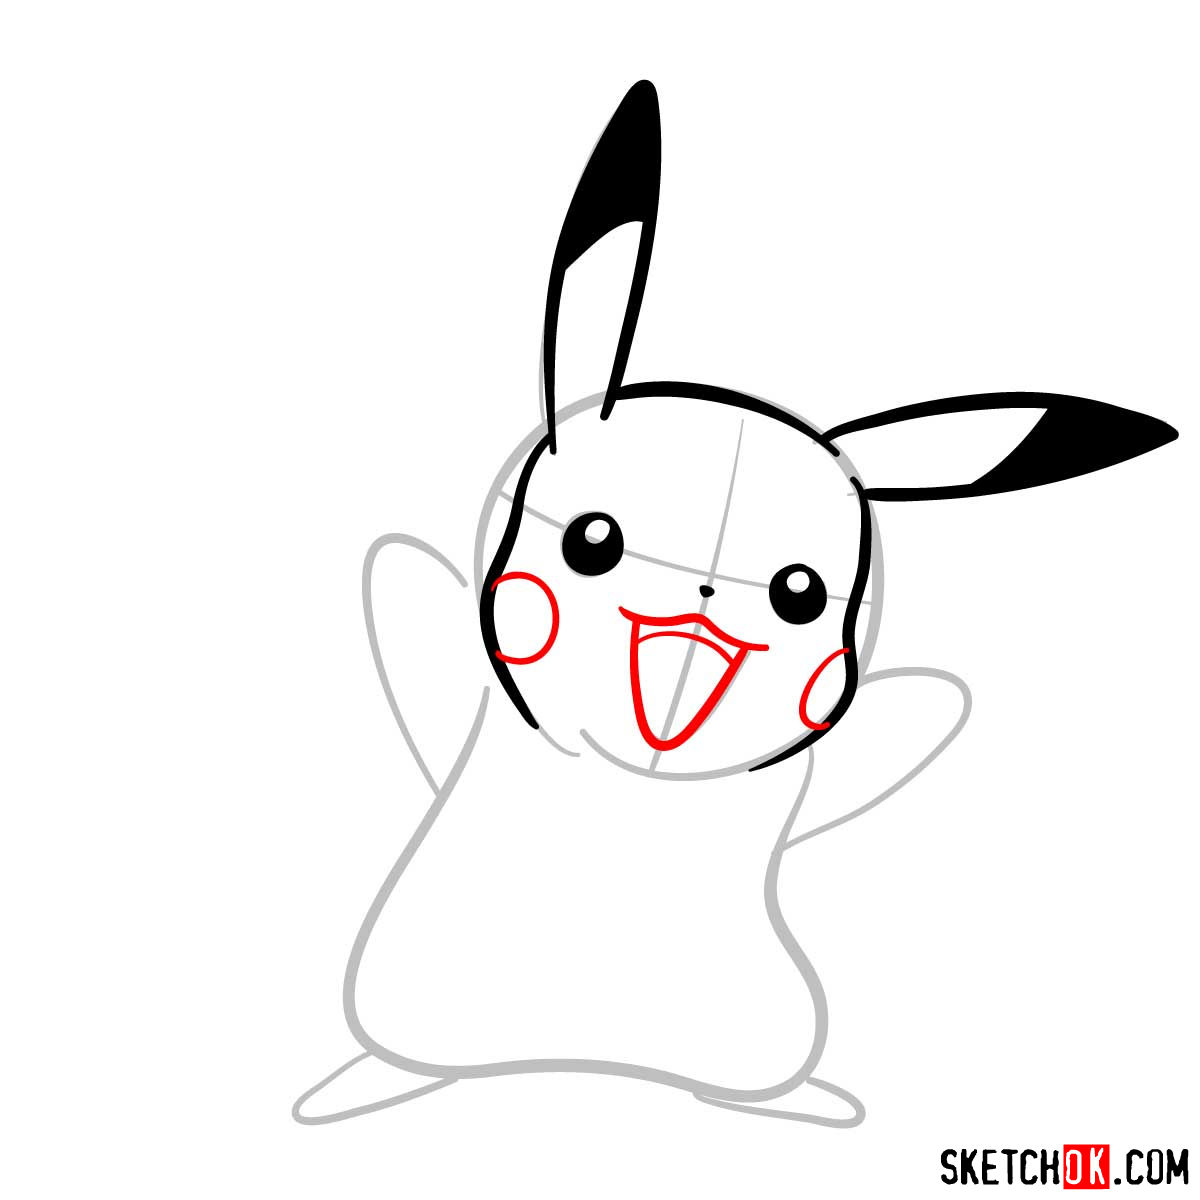 How to draw Pikachu Pokemon with arms wide open - step 05